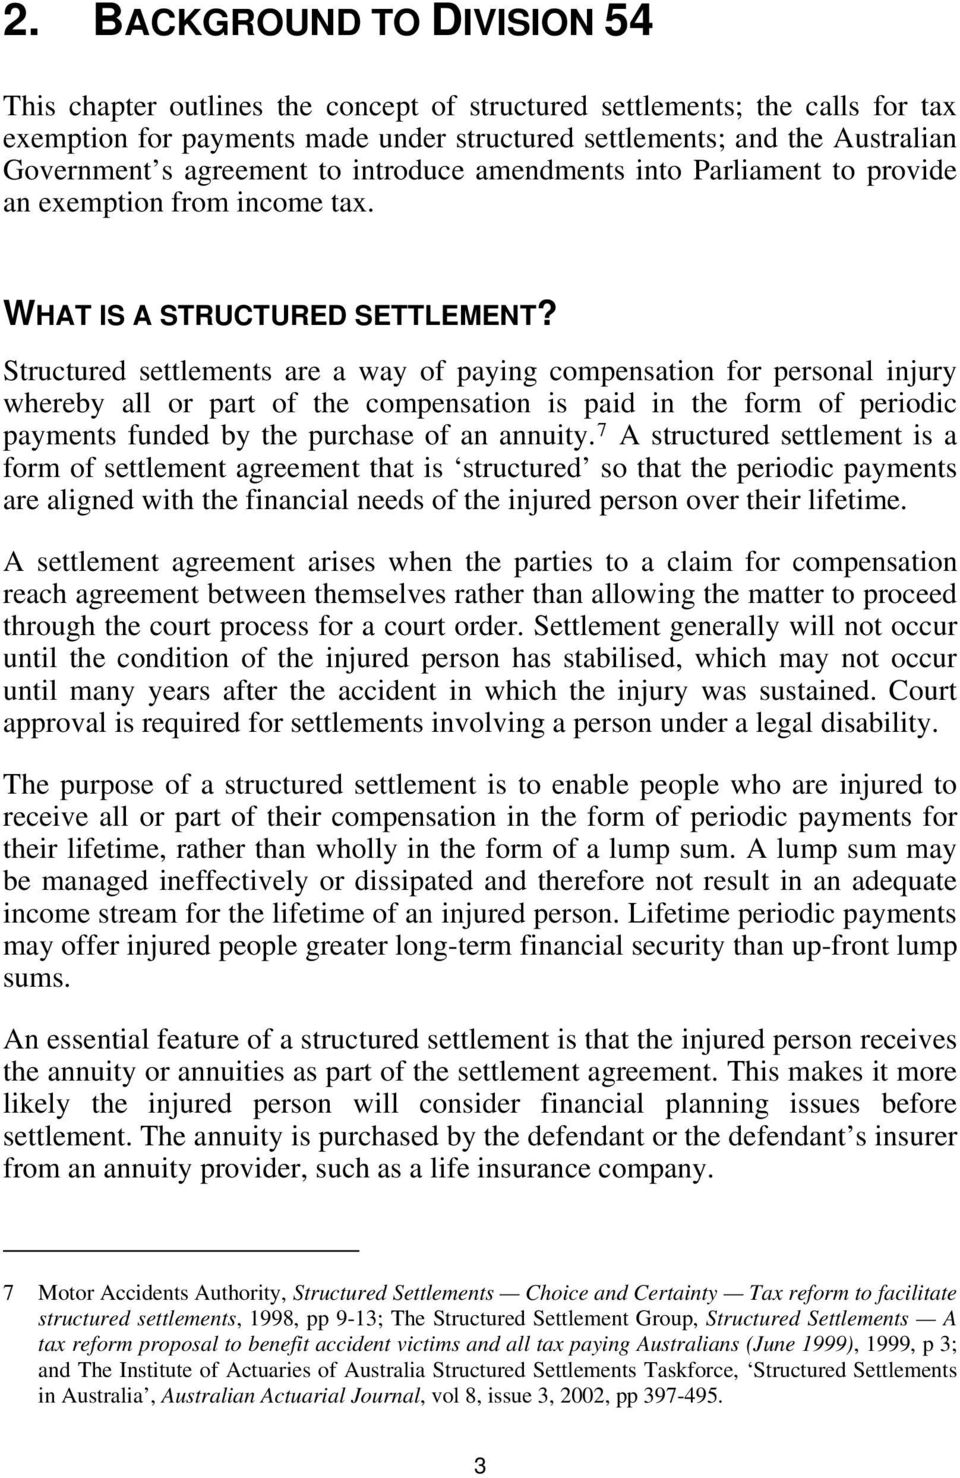 Structured settlements are a way of paying compensation for personal injury whereby all or part of the compensation is paid in the form of periodic payments funded by the purchase of an annuity.